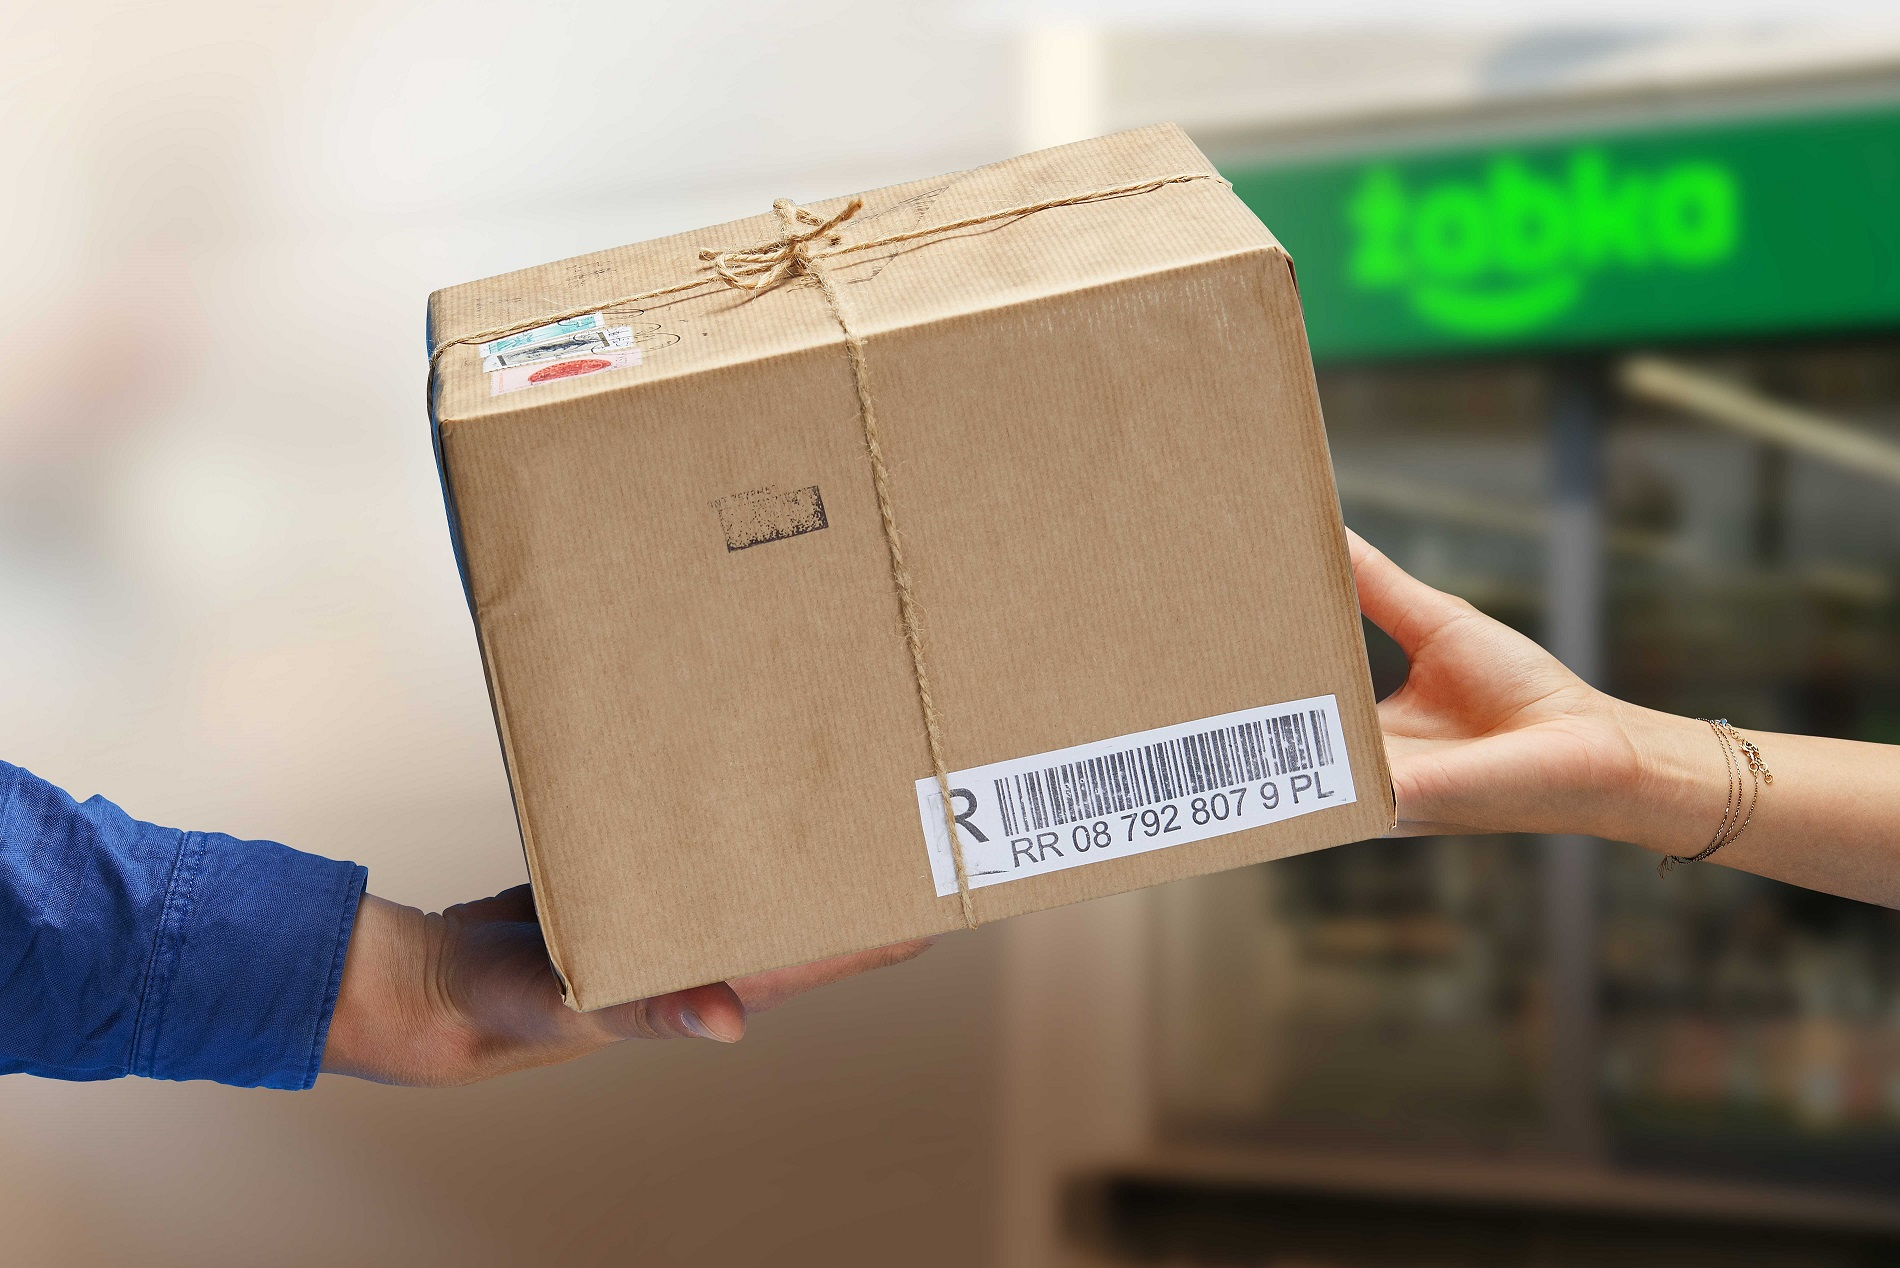 Żabka now allows online sellers to drop off packages in its stores